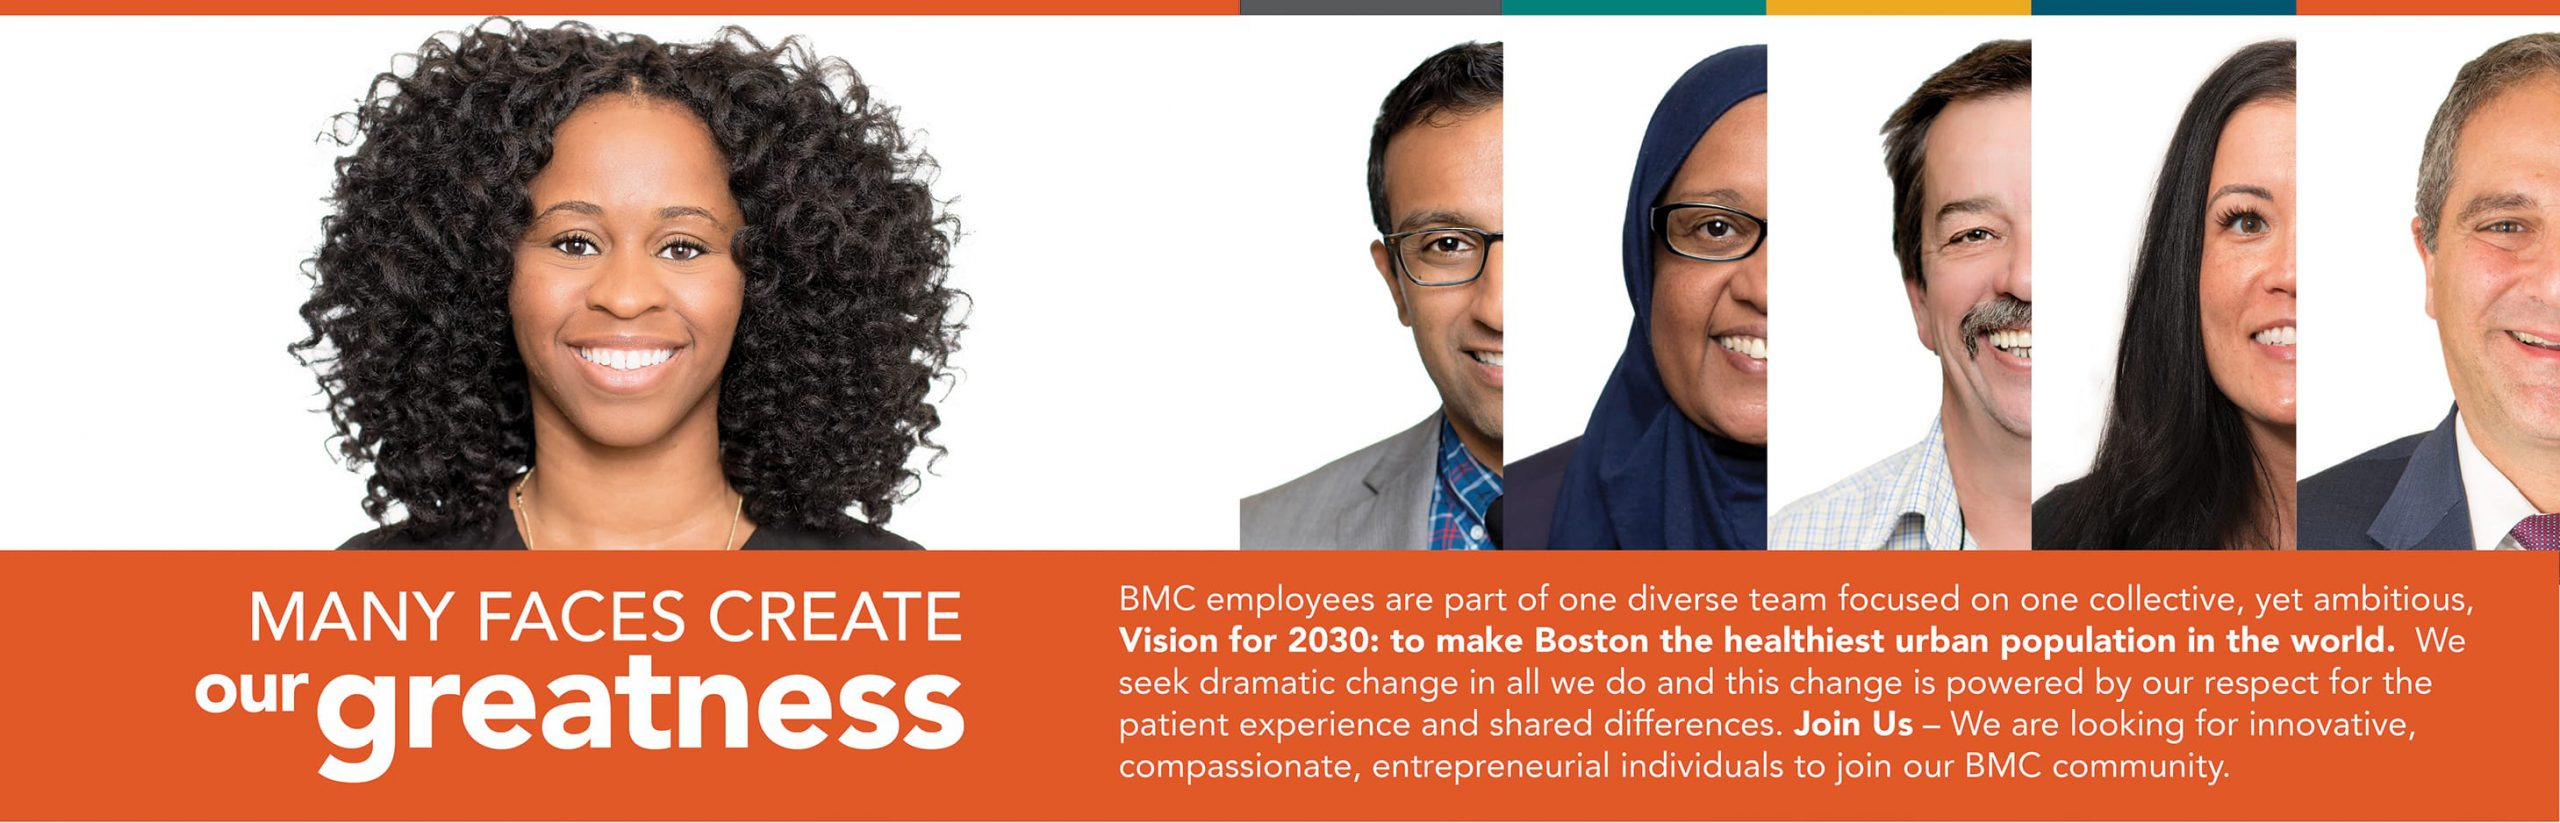 Faces of Greatness at Boston Medical Center